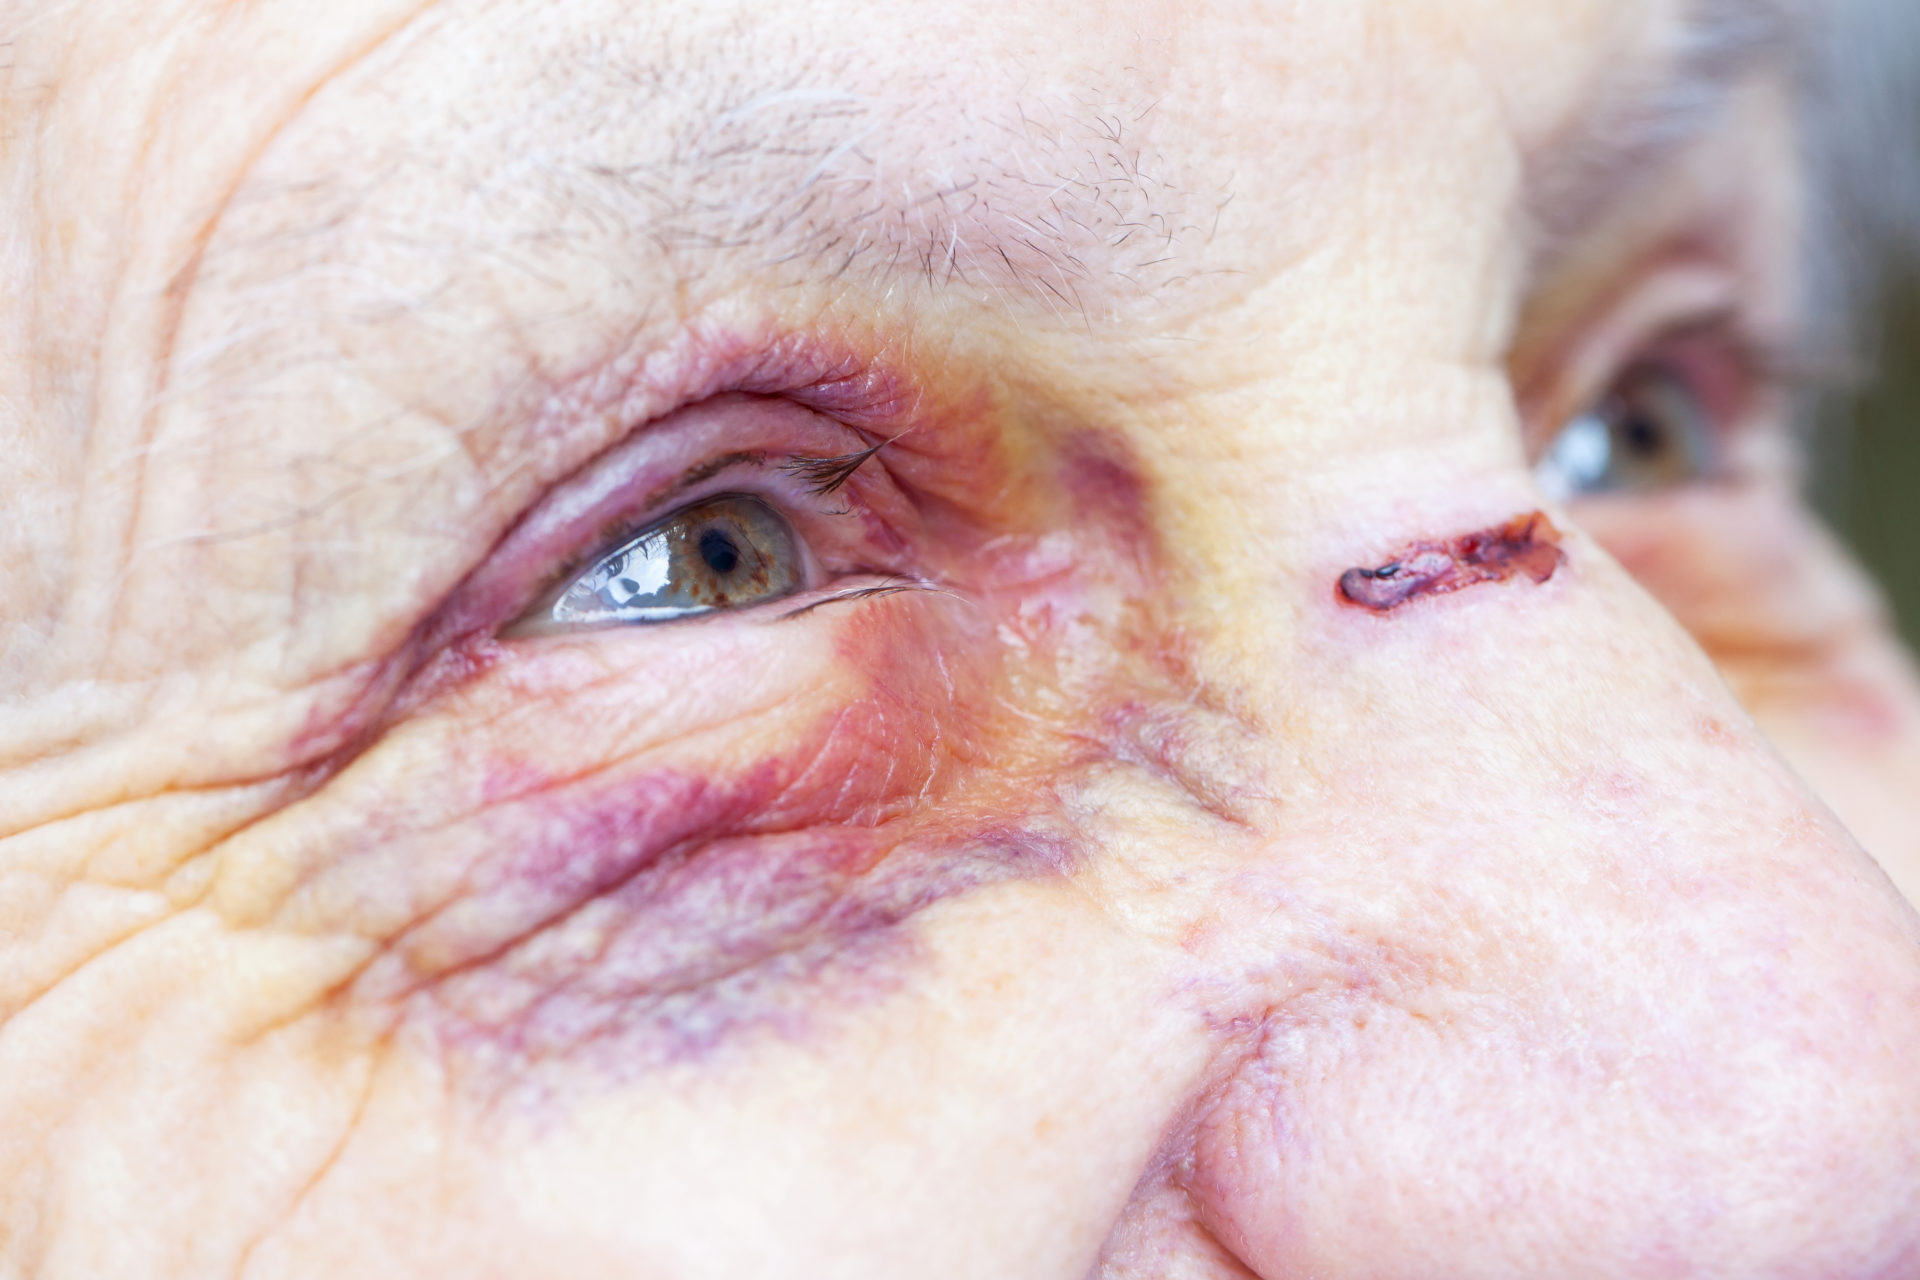 Closeup of elderly woman's face with a bruise on her eye.